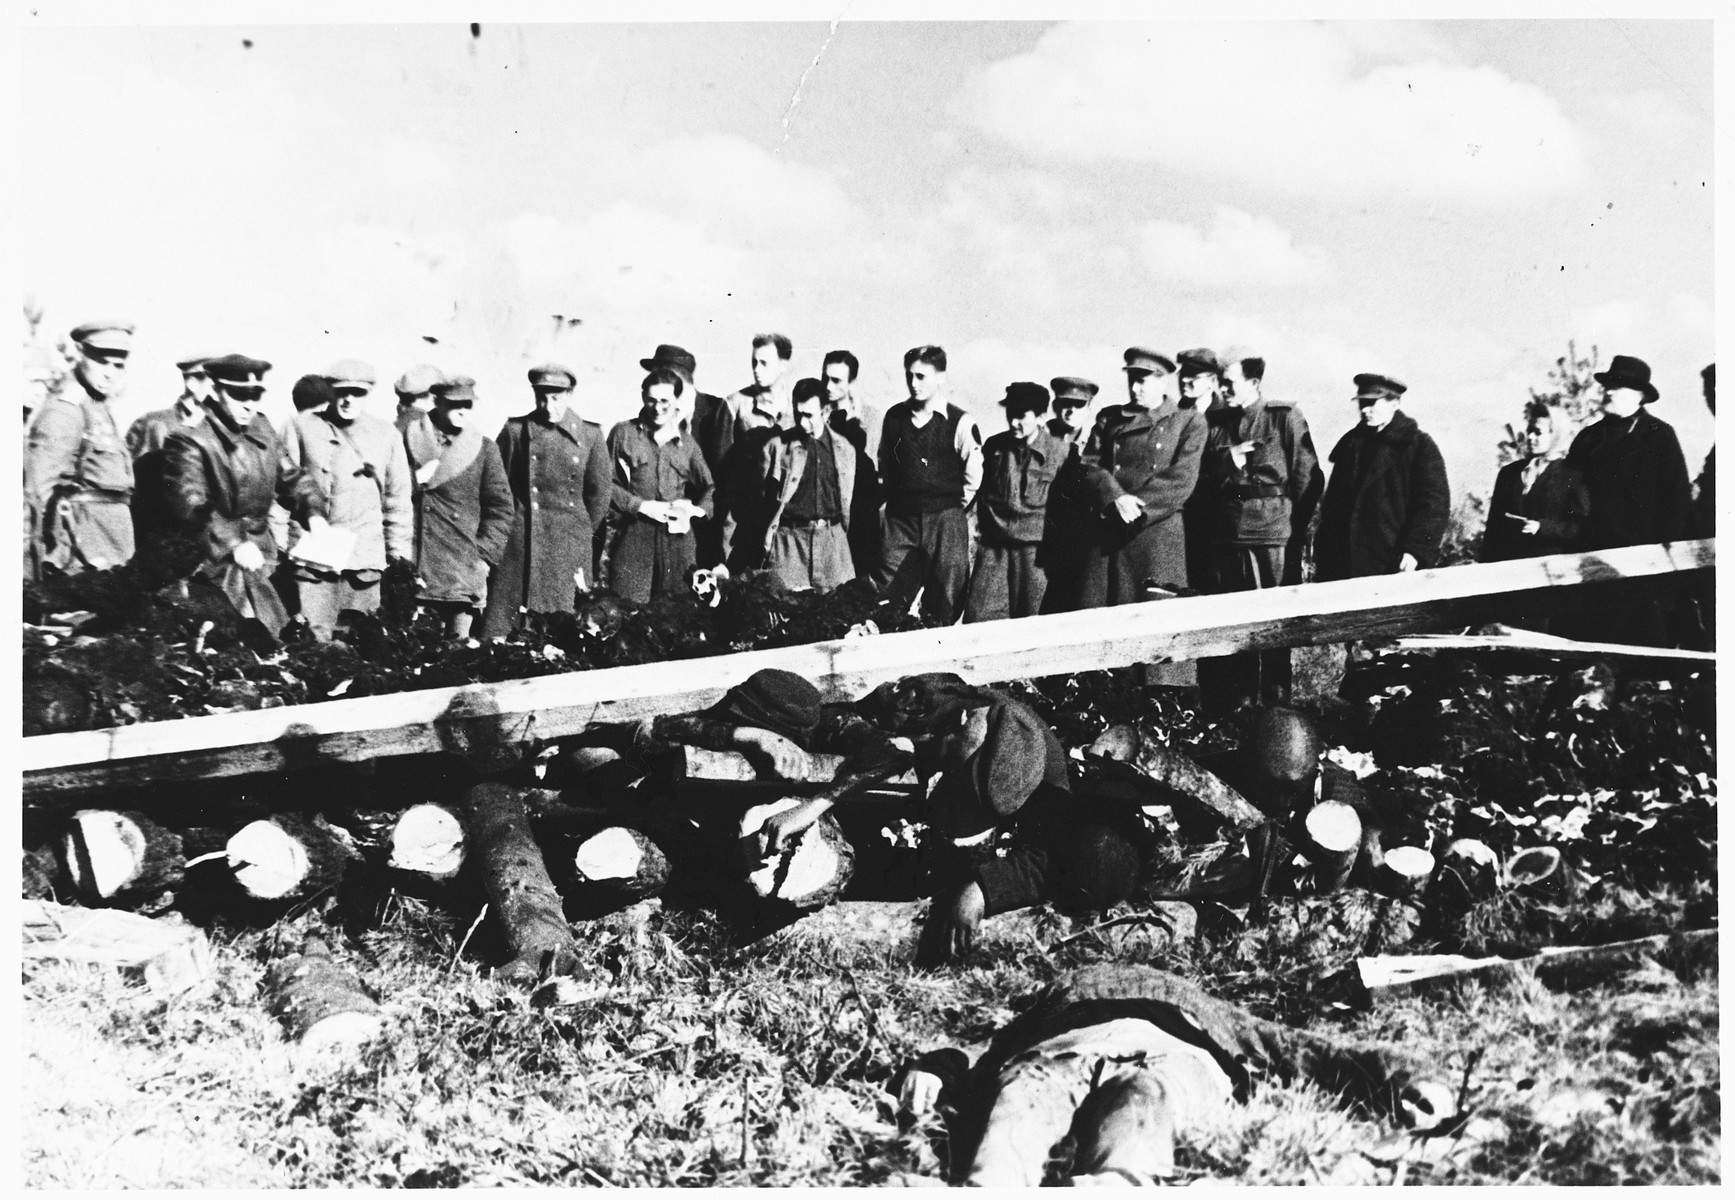 Soviet war crimes investigators view the corpses of prisoners in the Klooga concentration camp that have been stacked on a pyre for burning.